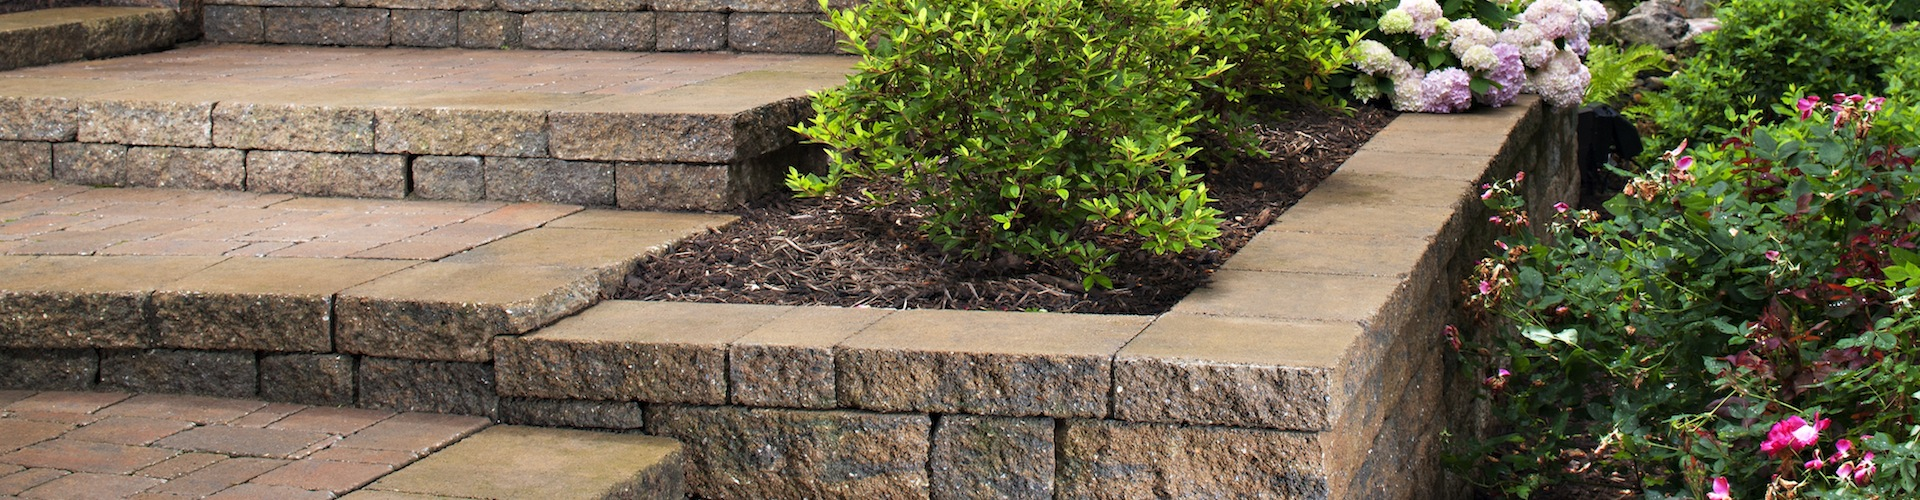 Landscaping-Pavers-and-Wall-Blocks